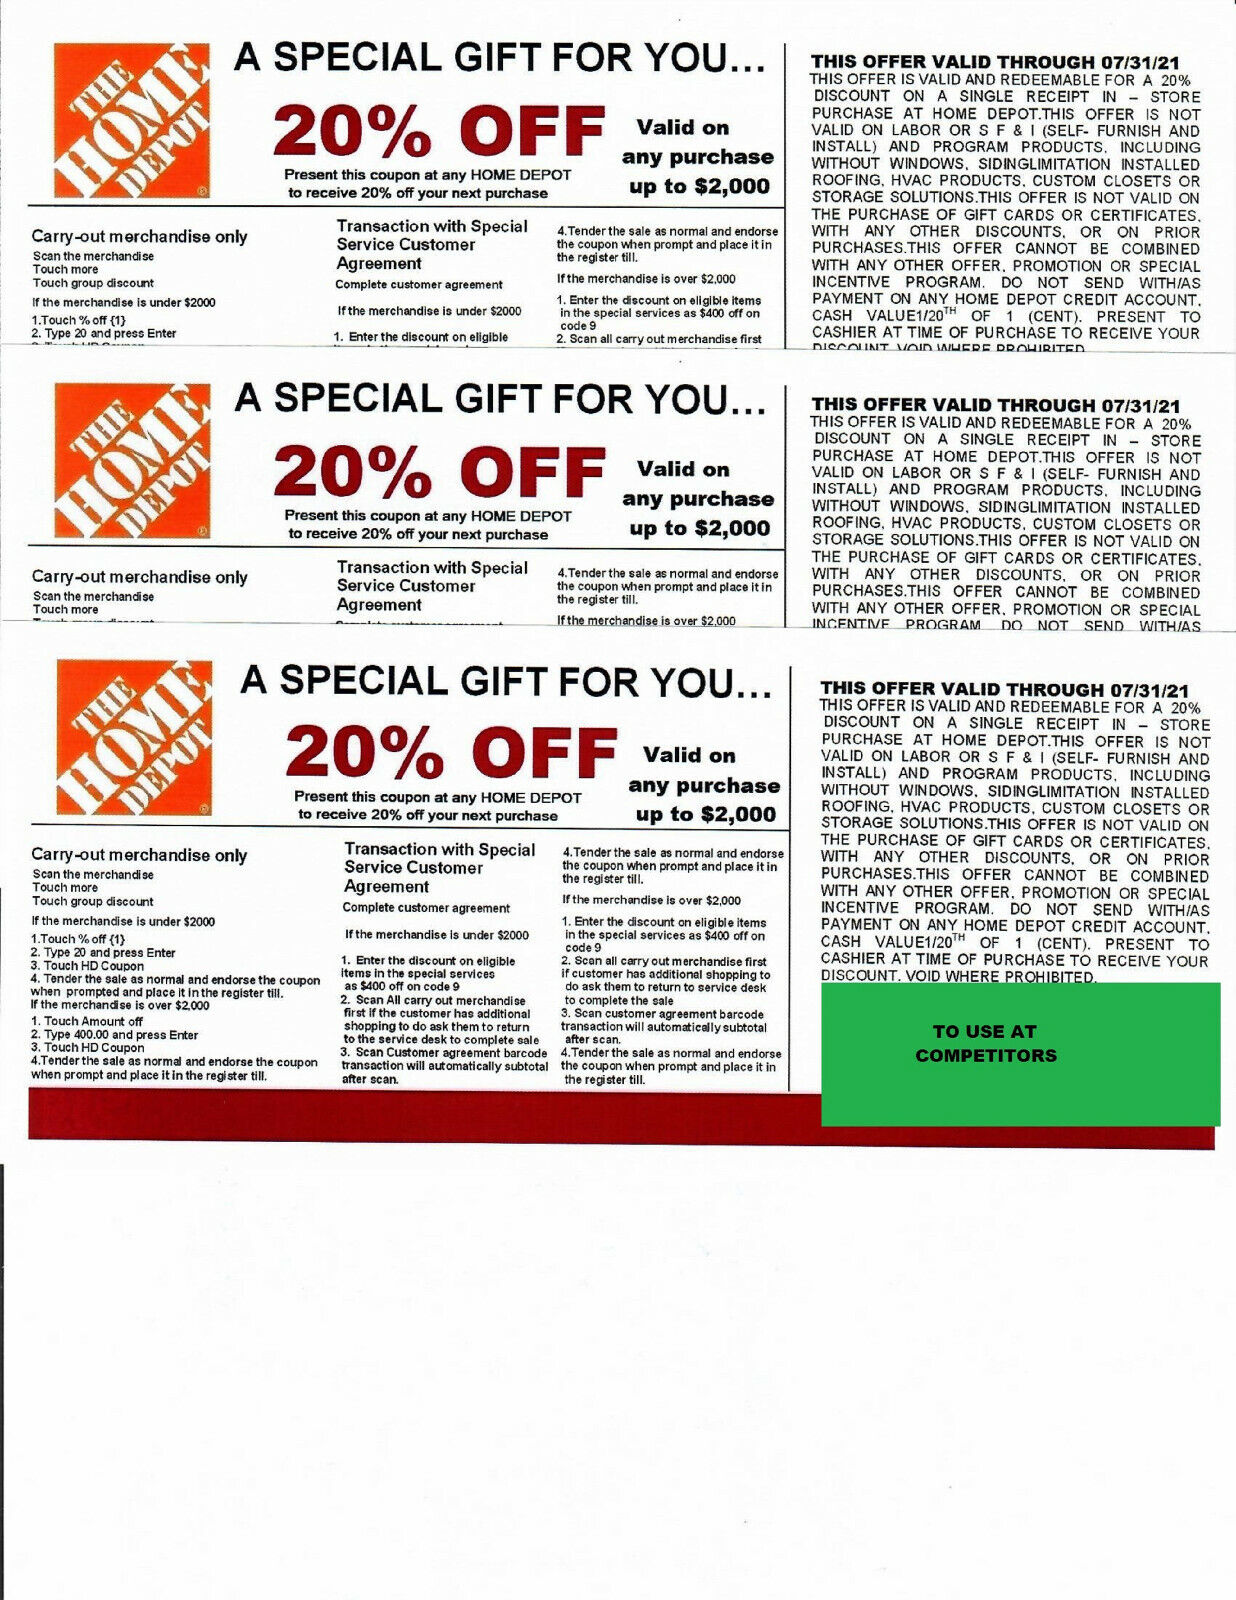 3 20 OFF HOME DEPOT Competitors Coupon At Lowe s Exp 07/31/21 - $15.00